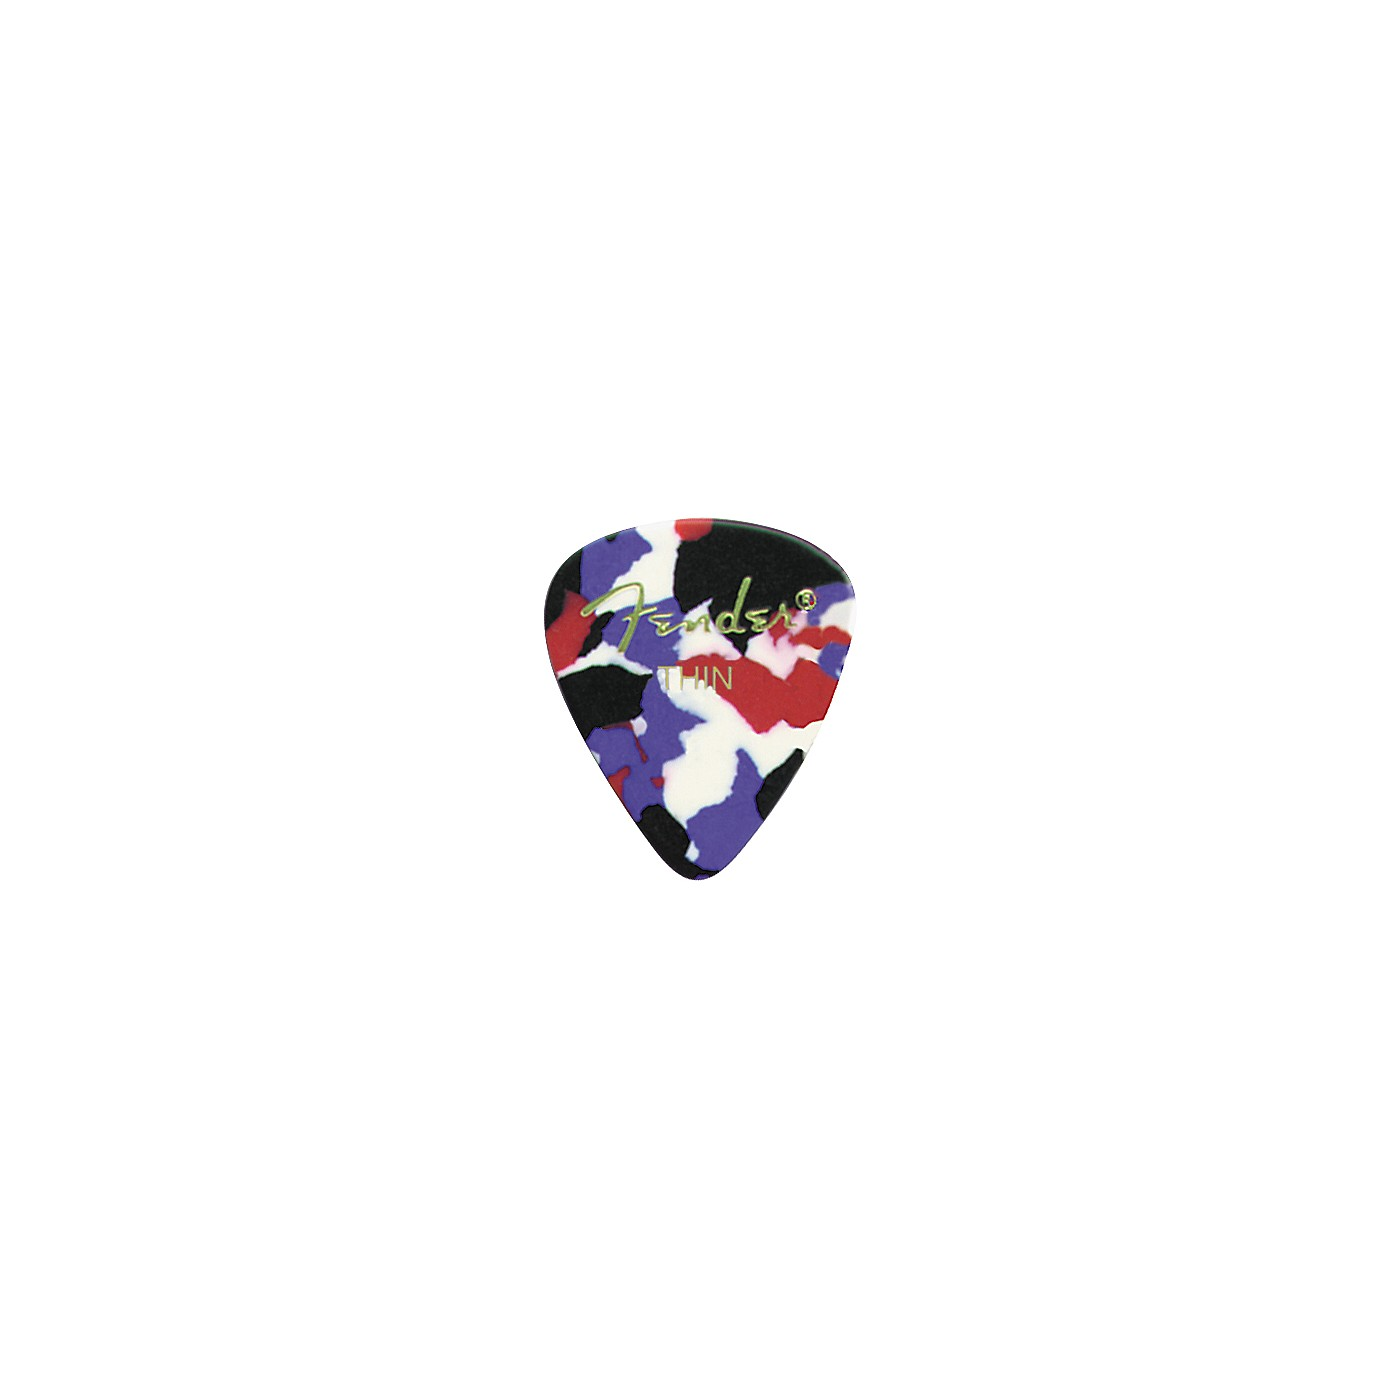 Fender Classic Celluloid Confetti Guitar Pick 12-Pack thumbnail